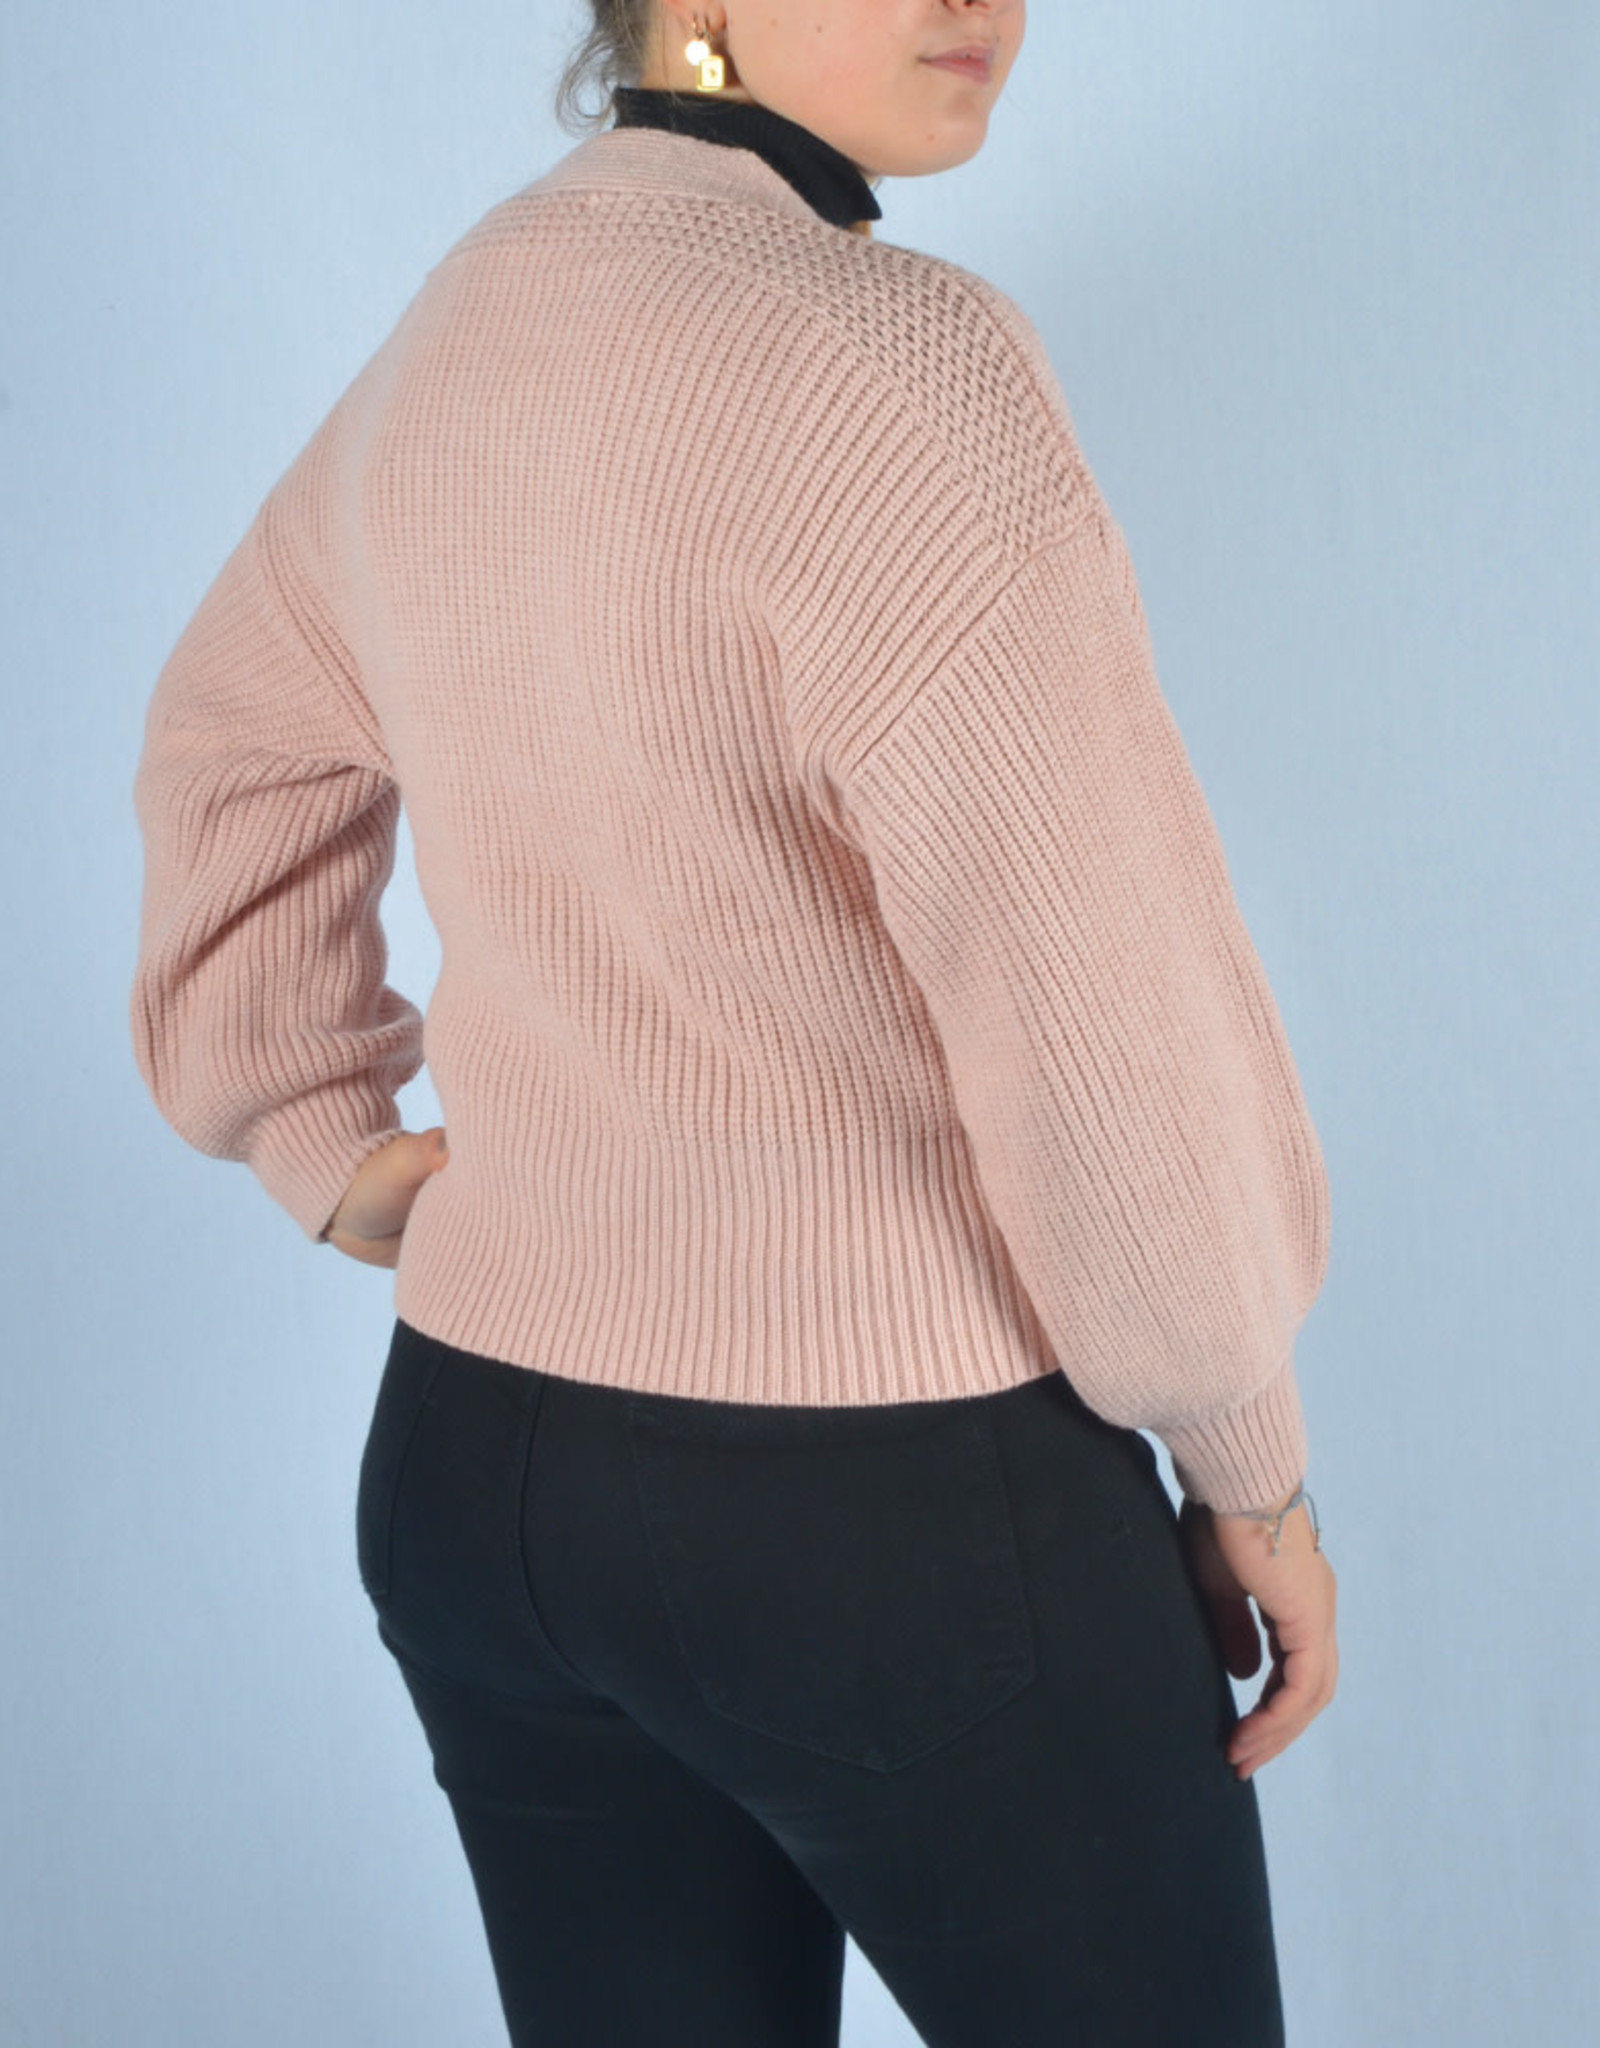 Leila gilet soft pink one size